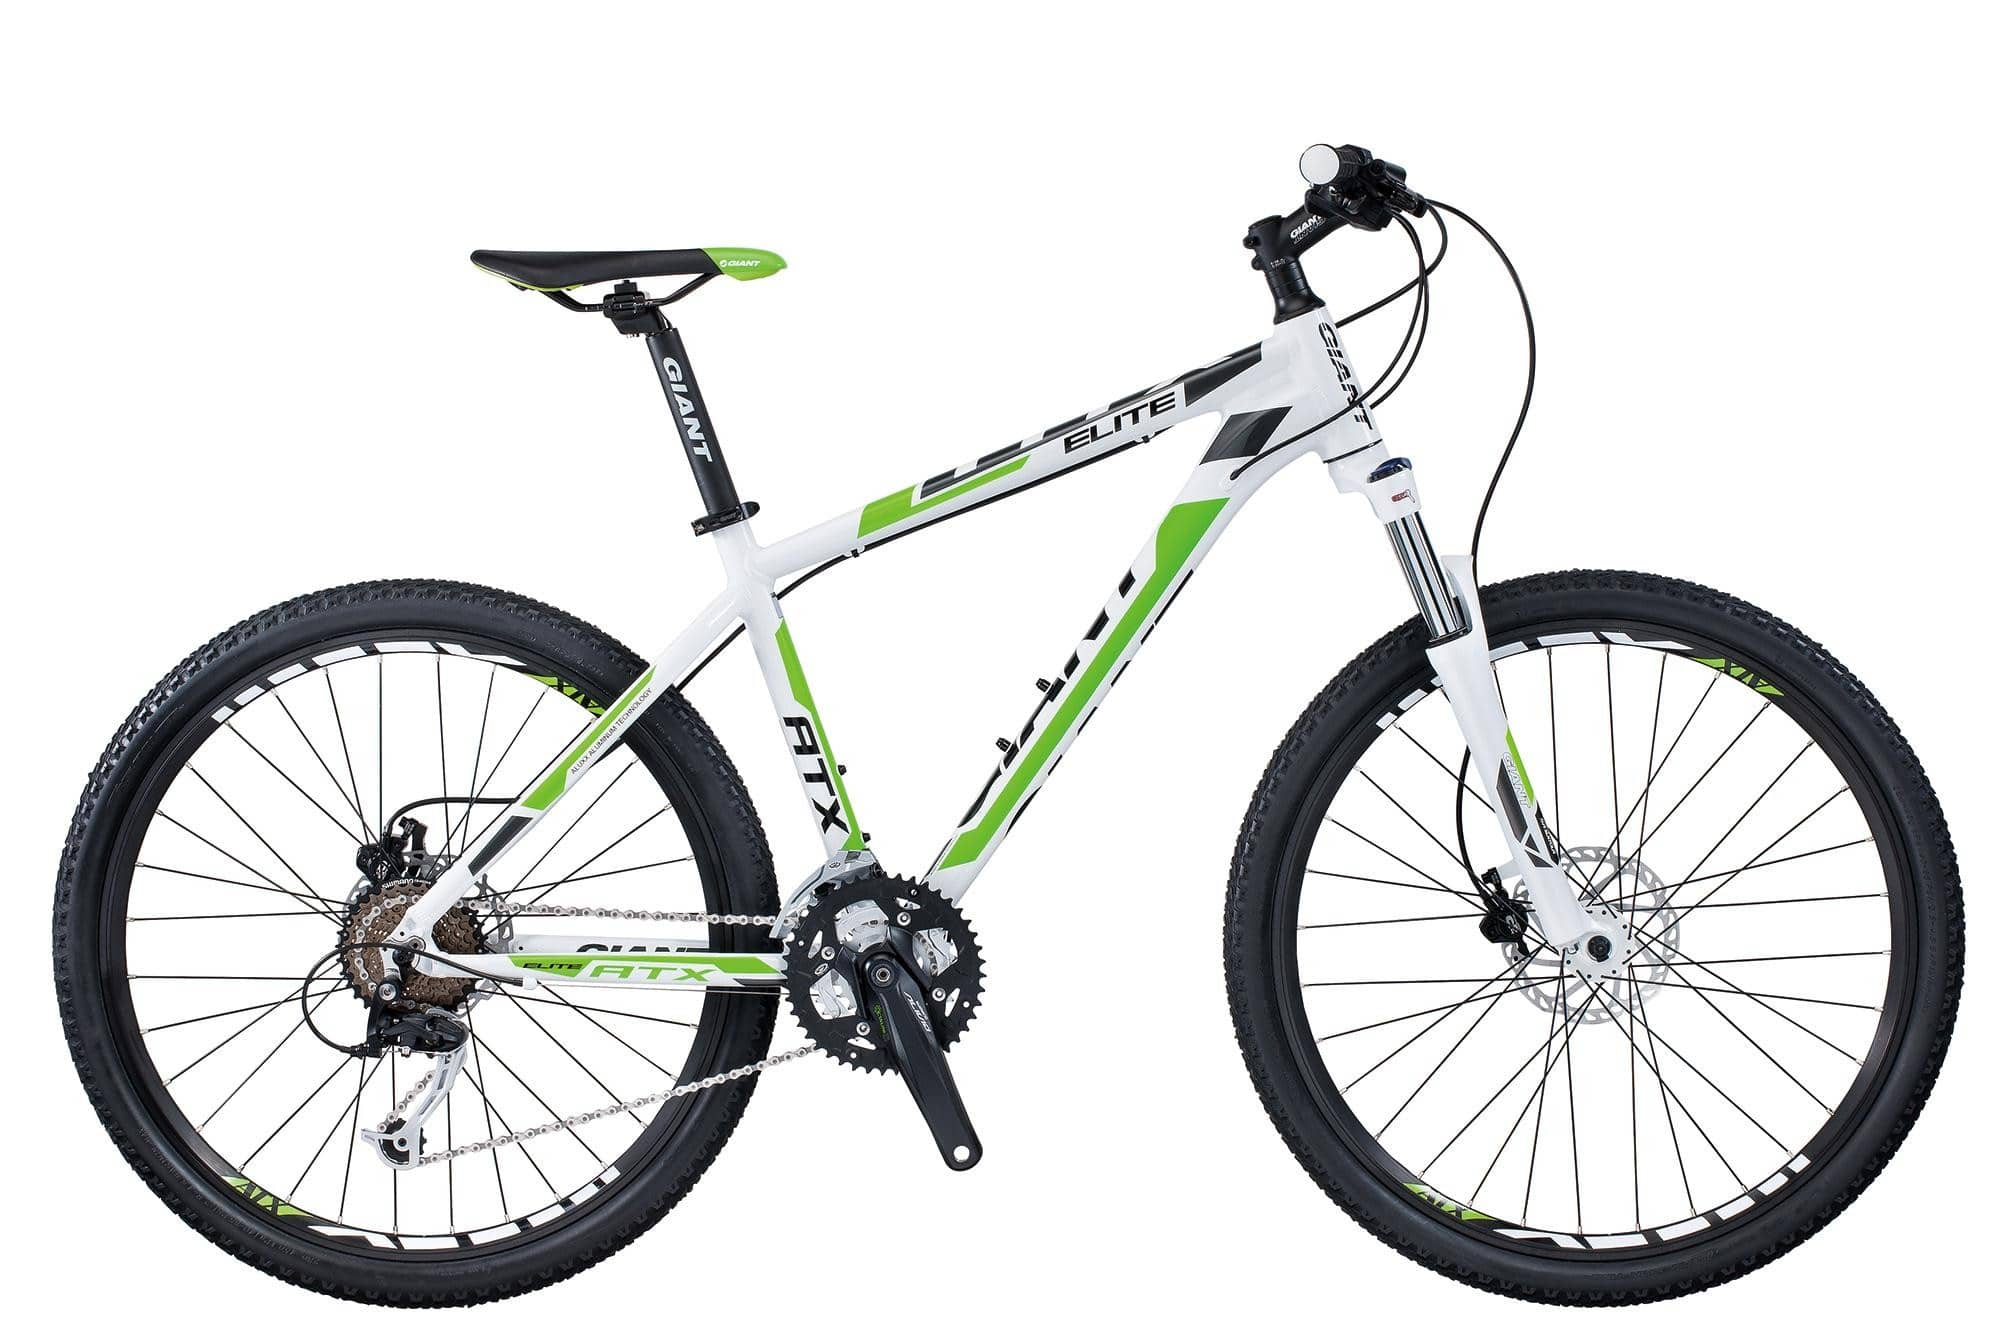 a489d43af61 Giant ATX ELITE 1 2015 Cycle Online | Best Price, Deals and Reviews | Buy  on Choosemybicycle.com